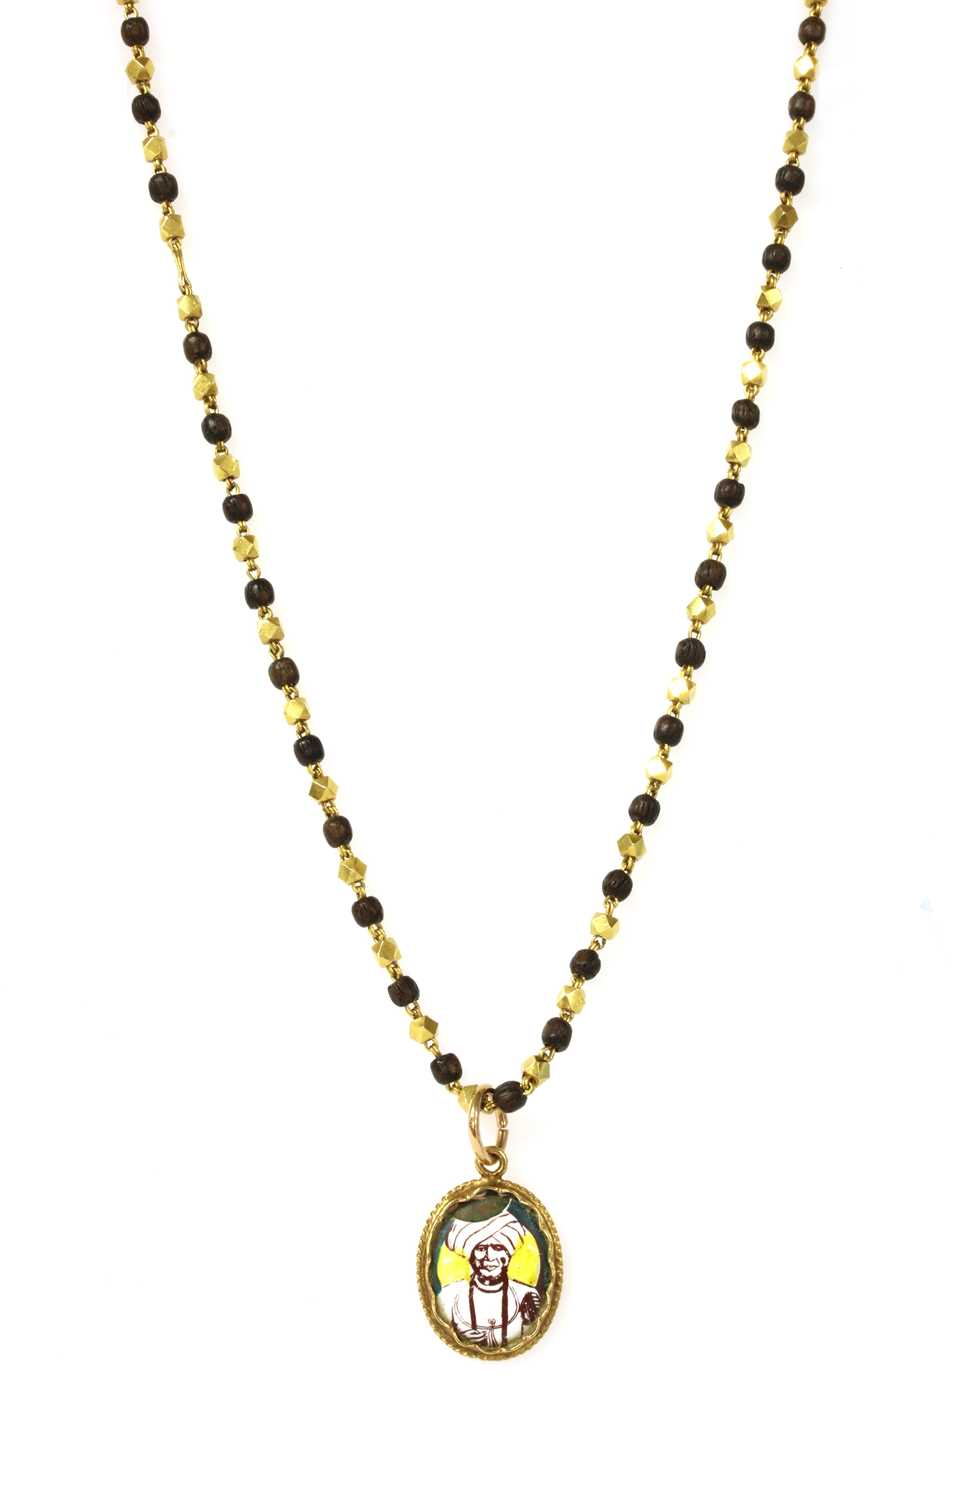 An Indian high carat gold pendant and chain,